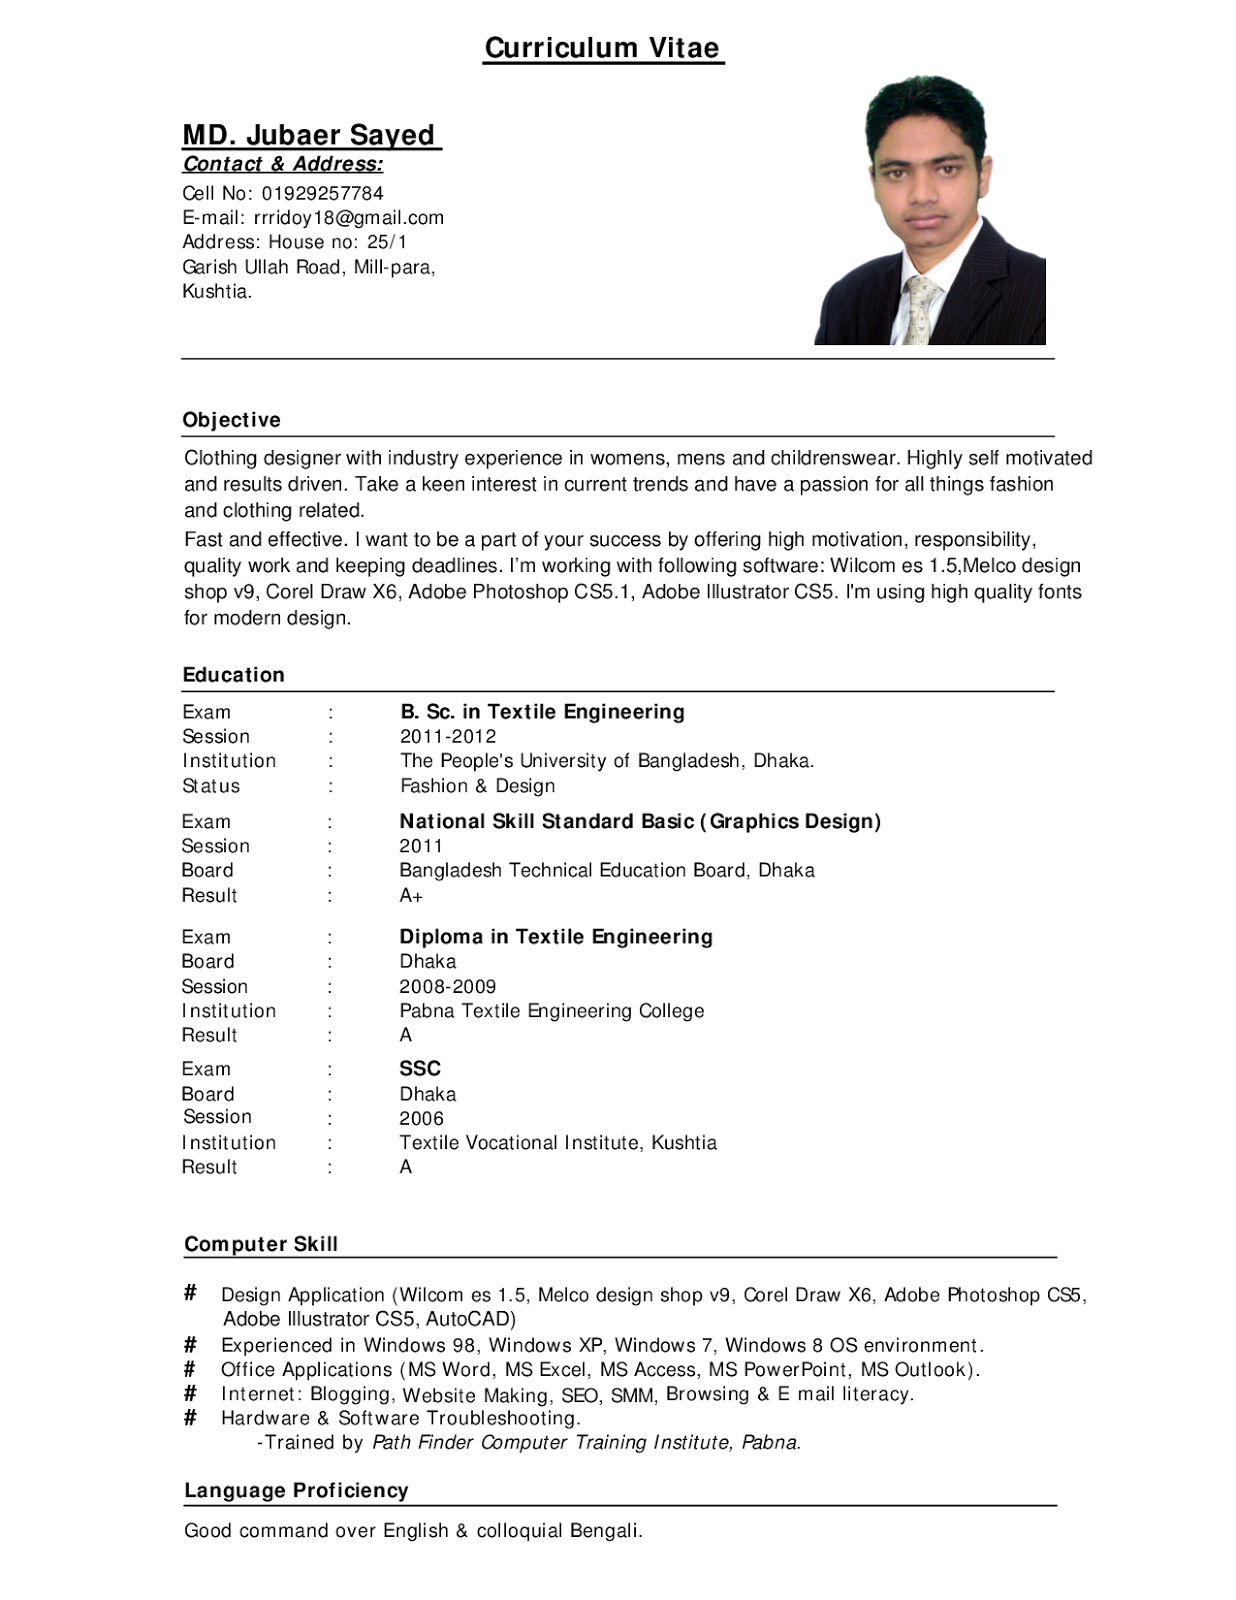 resume samples pdf sample resumes - Samples Of Resume Pdf